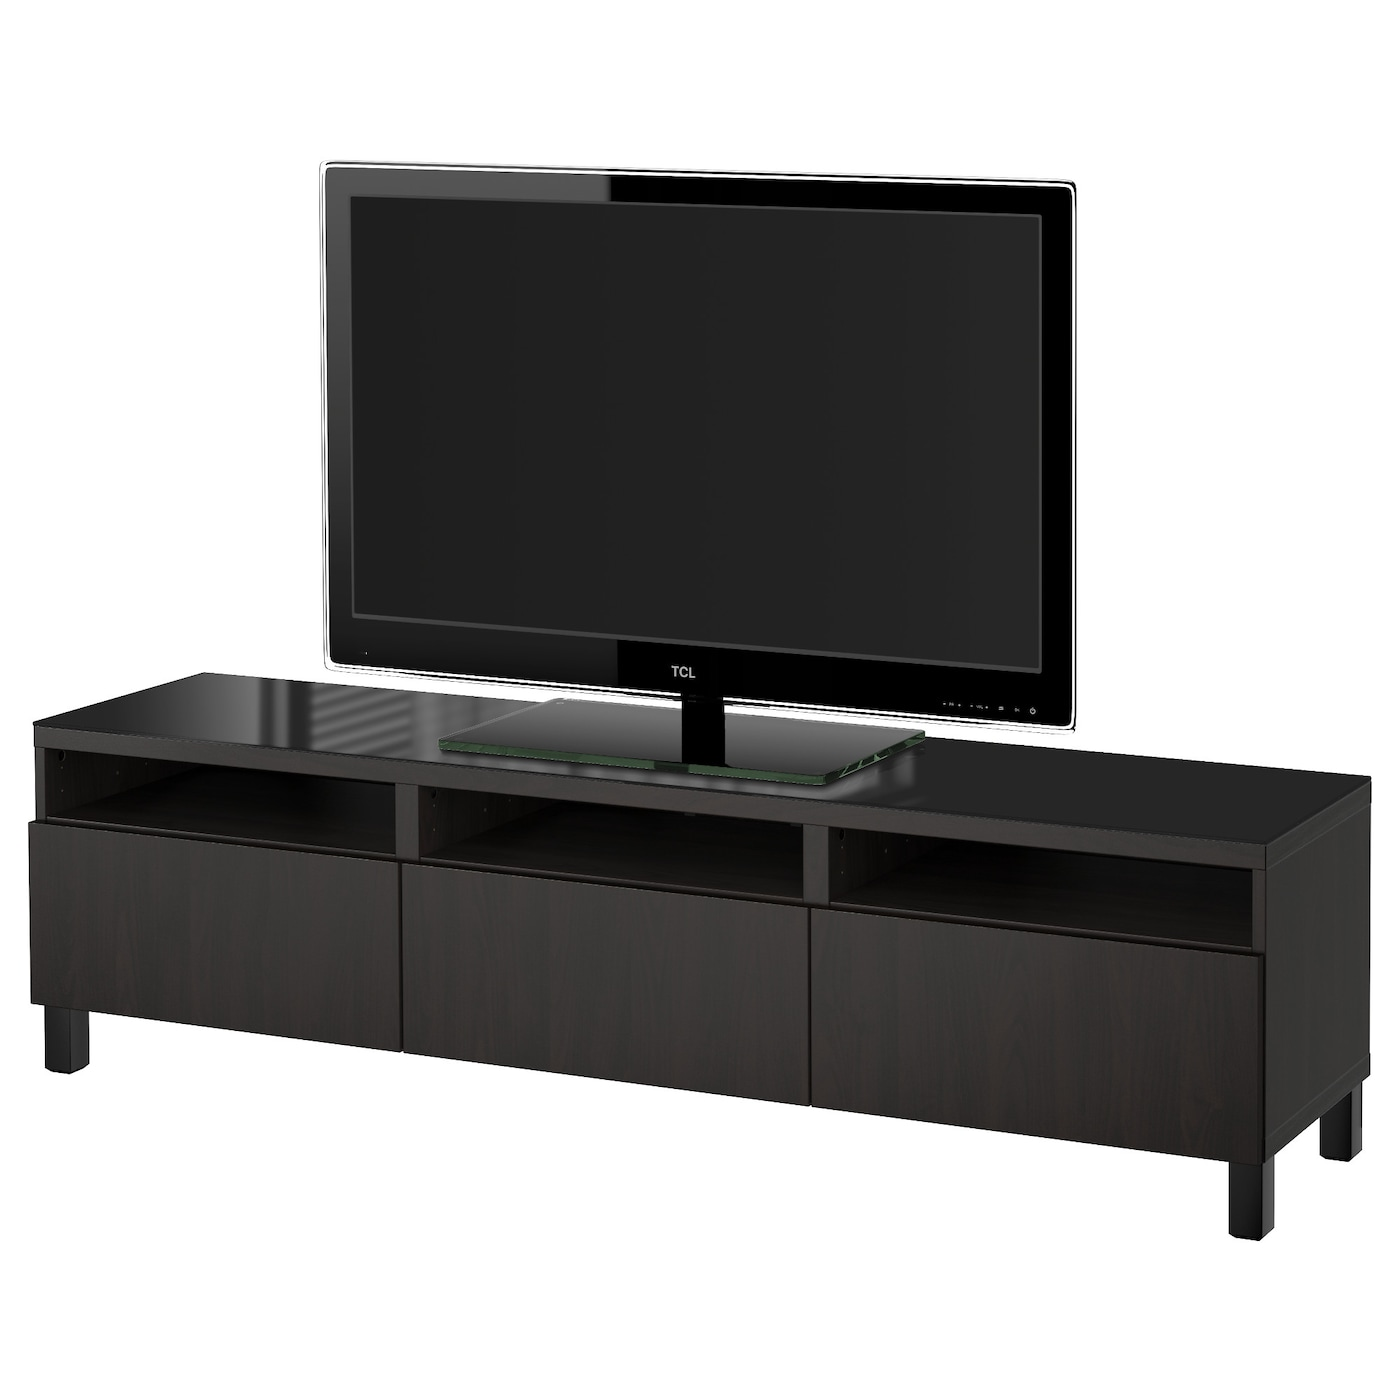 mounted tv itm gloss hung with led set room stand living high vigo lights wall cabinet